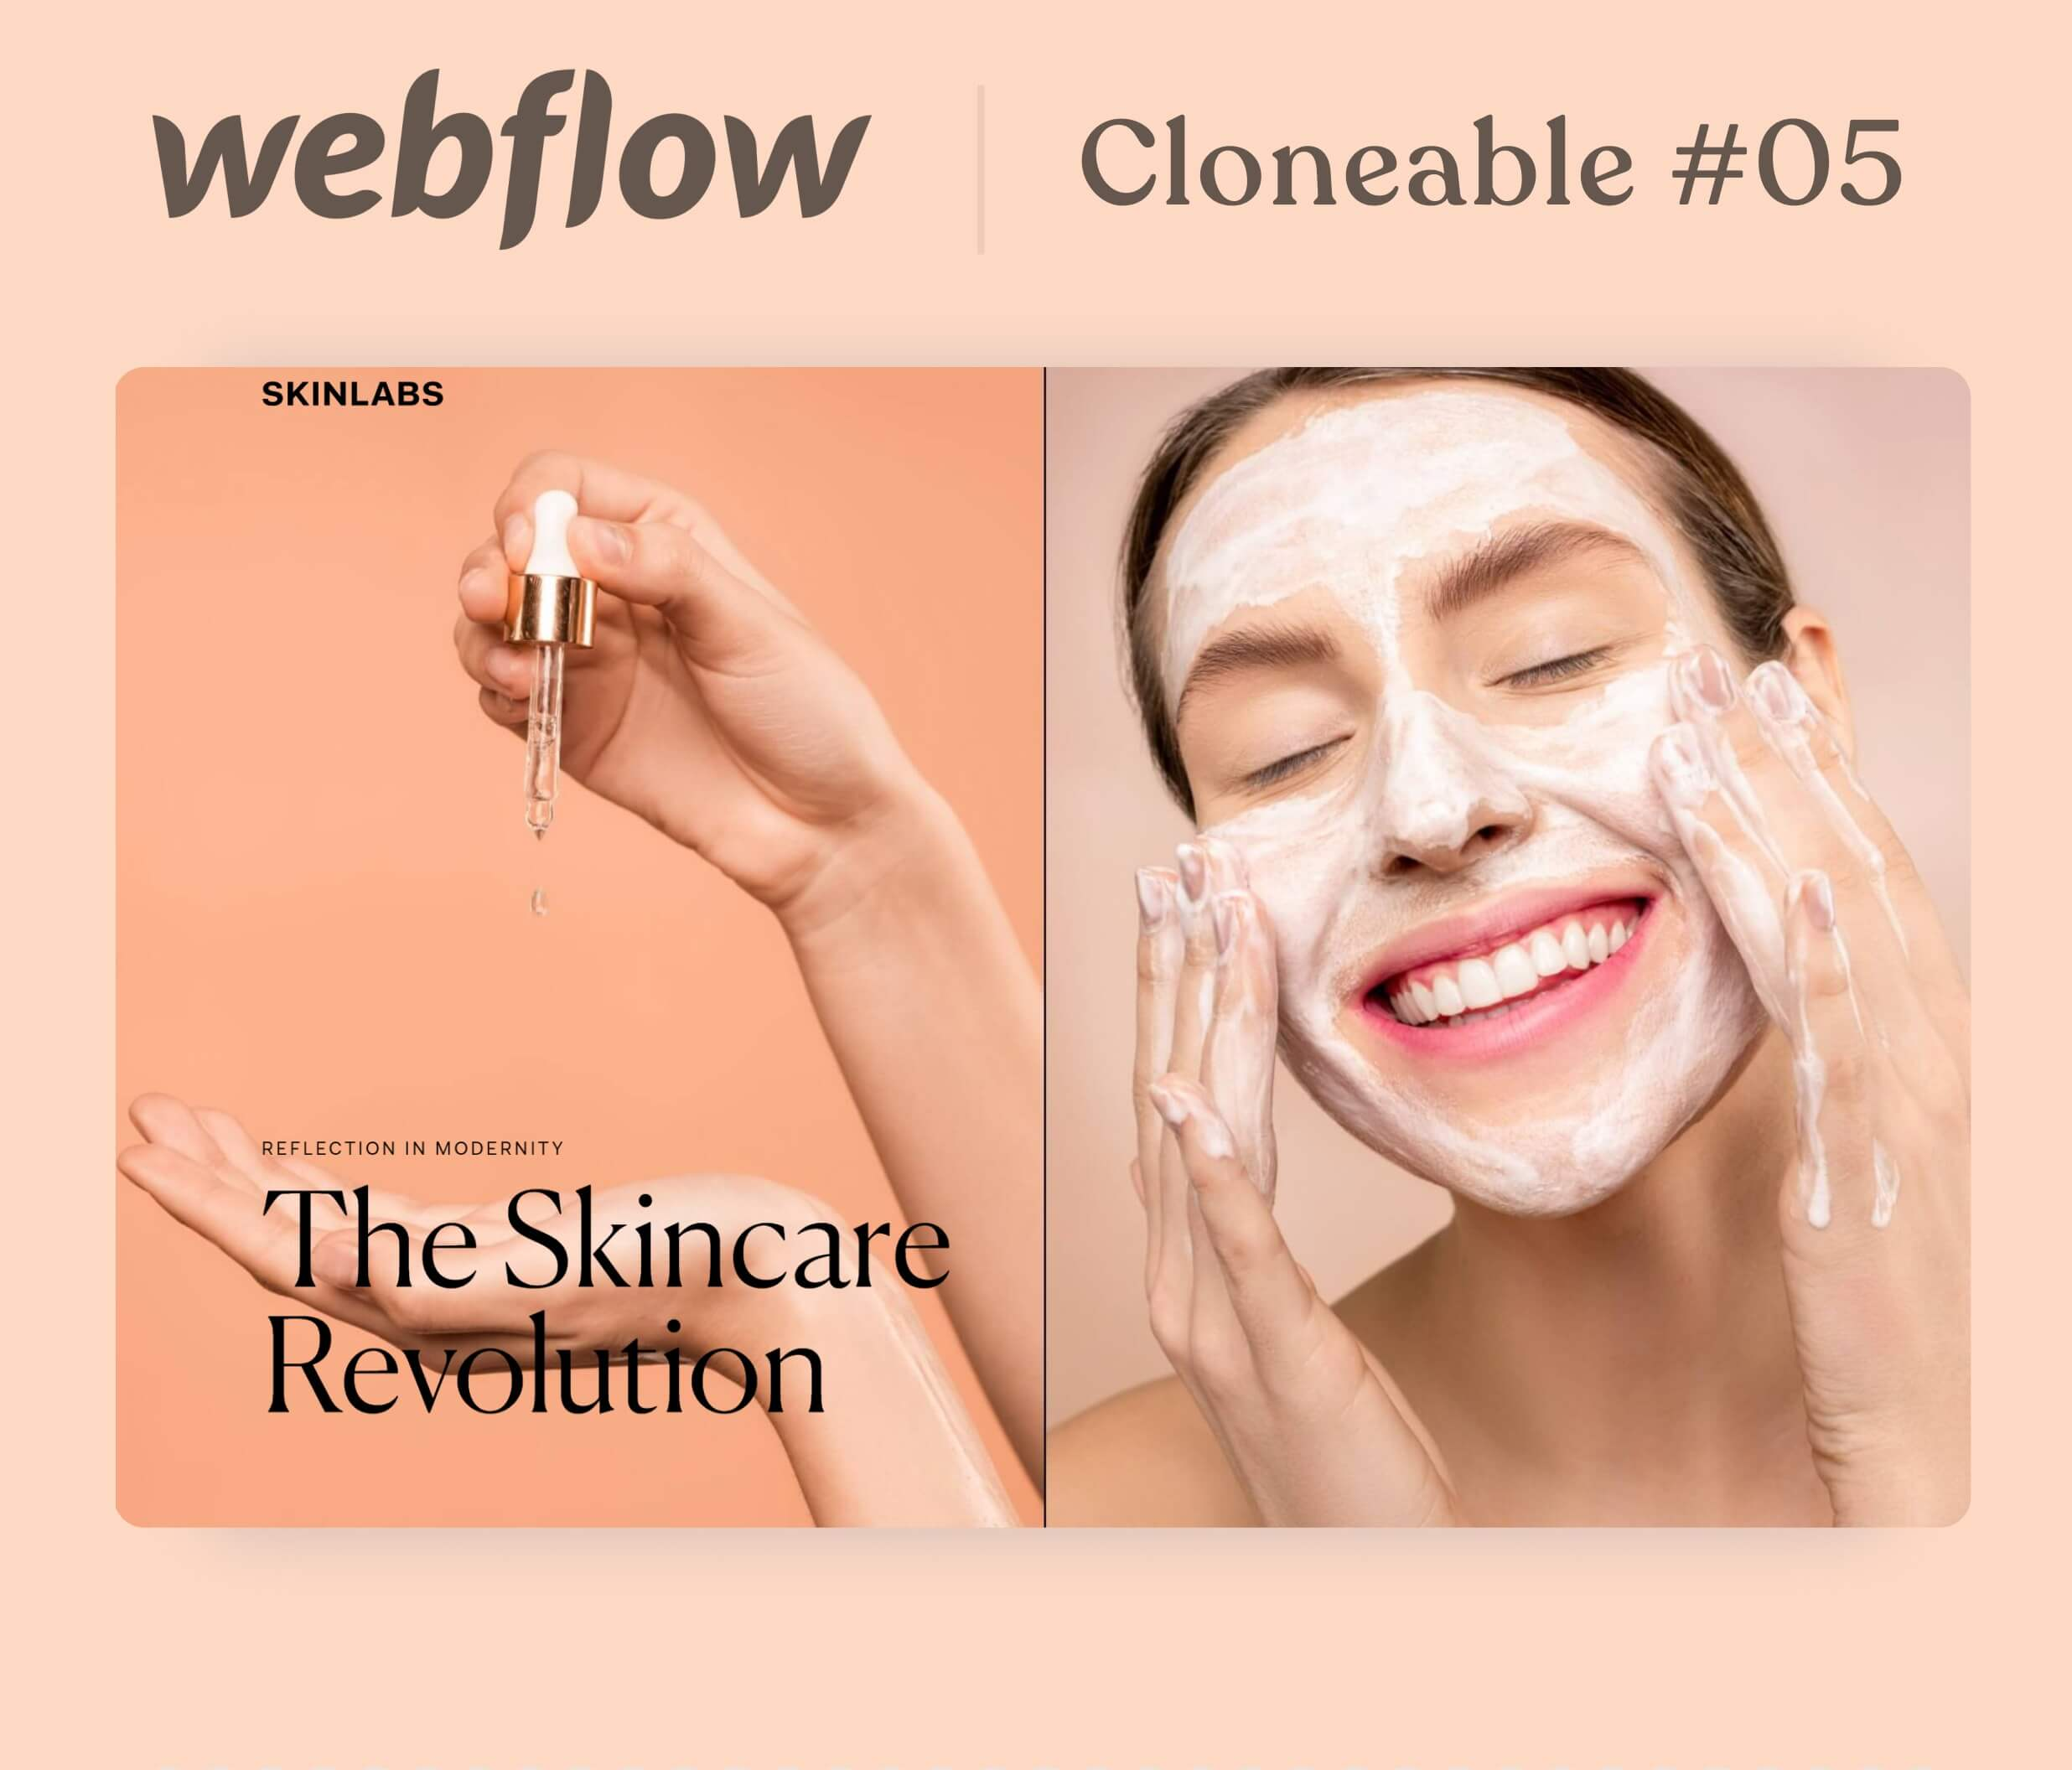 Webpage mockup of skincare products